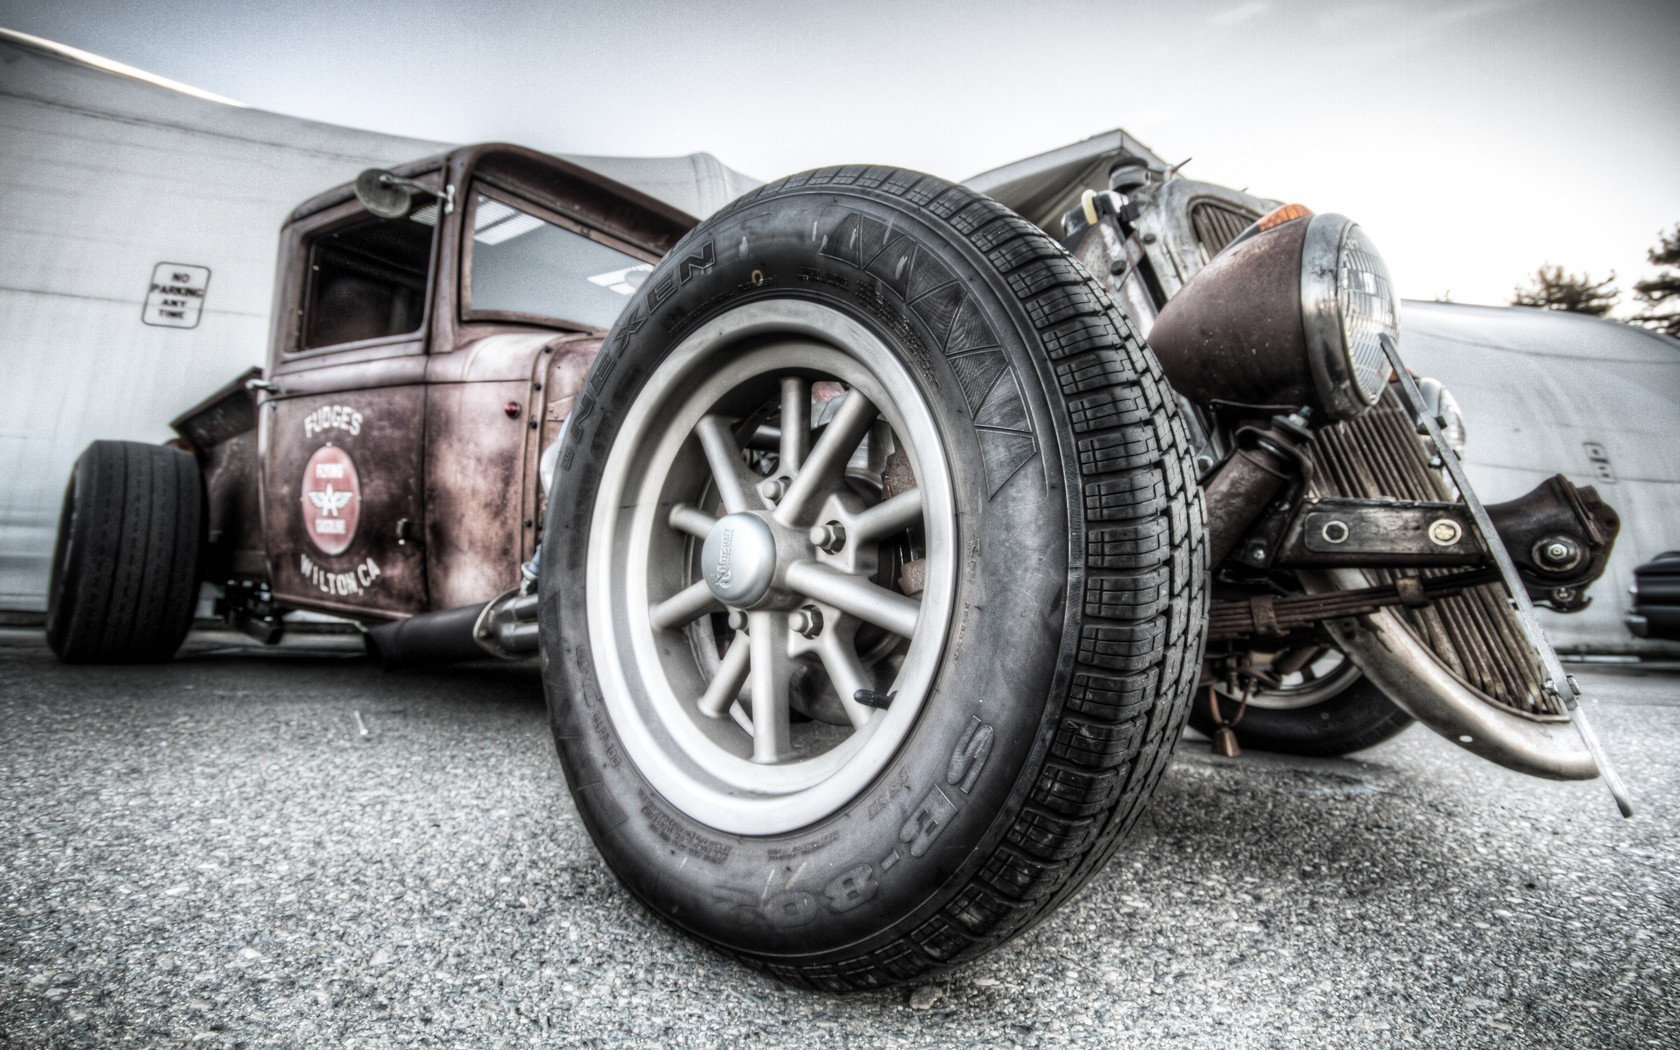 High Resolution Rat Rod Hd 1680x1050 Background ID391113 For PC